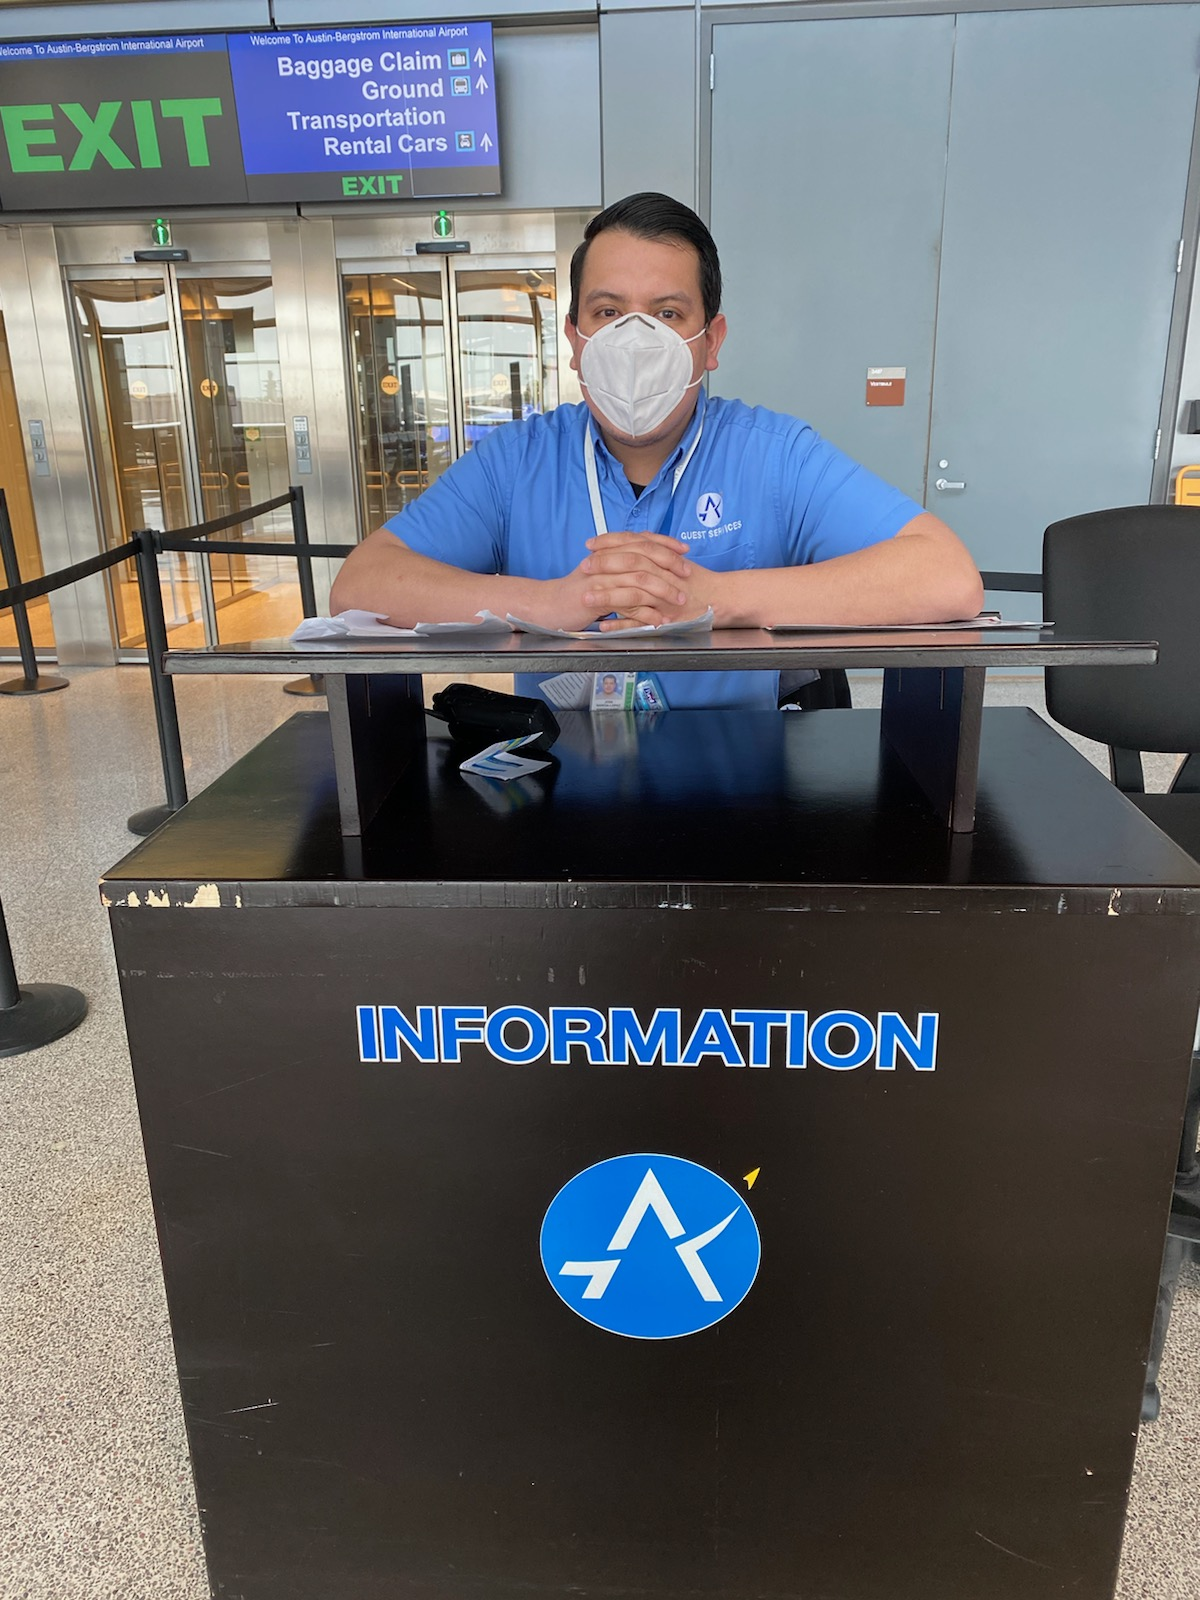 AUS Guest Services representative wears a mask while in the terminal